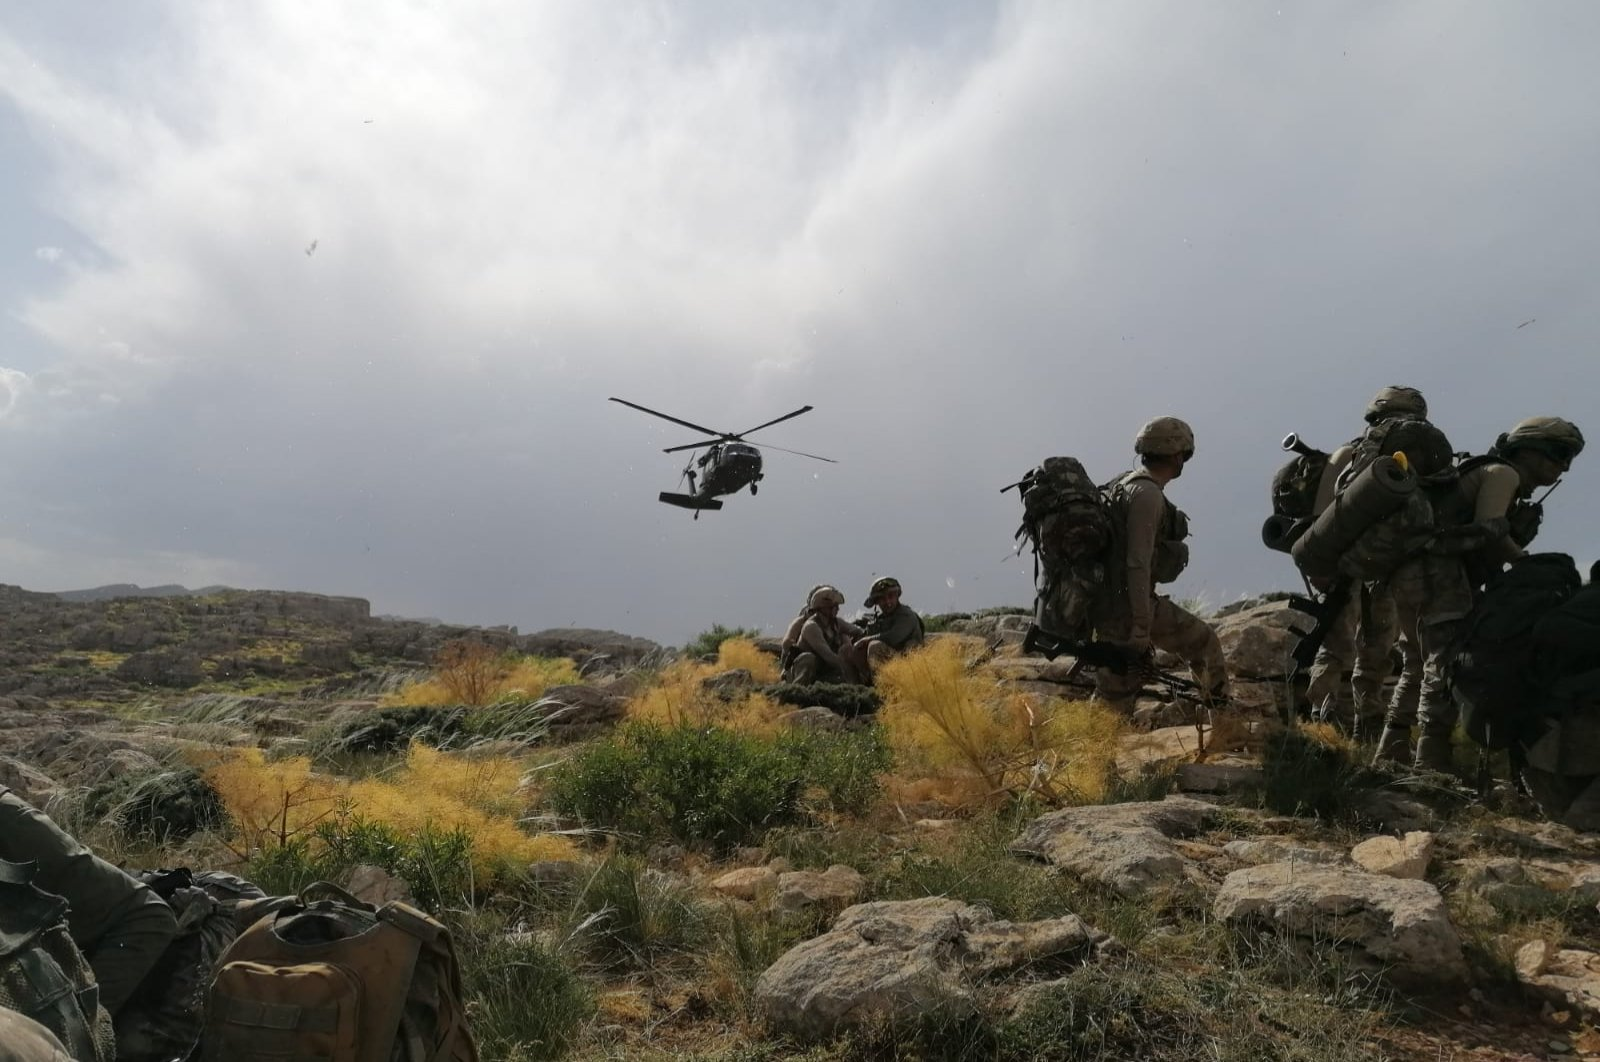 Turkish military regularly conducts operations targetting the PKK terror group in southeastern Turkey and northern Iraq, from which they carry out attacks in Turkey. (AA Photo)